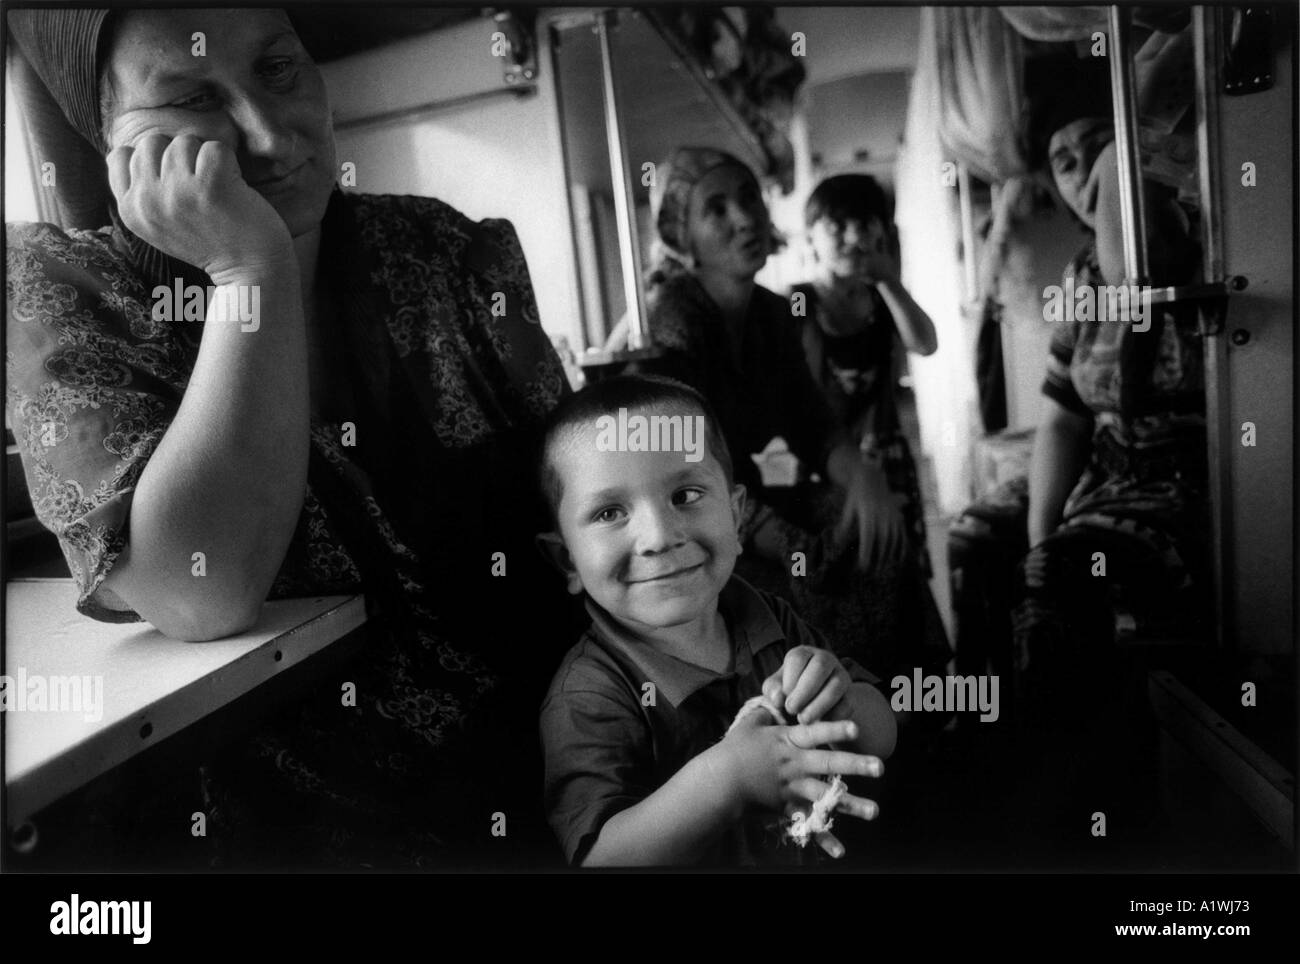 INGUSHETIA NASRAN 2000 LEILA A CHECHEN REFUGEE LIVING ON A TRAIN WITH HER CHILDREN AND 5000 OTHERS - Stock Image